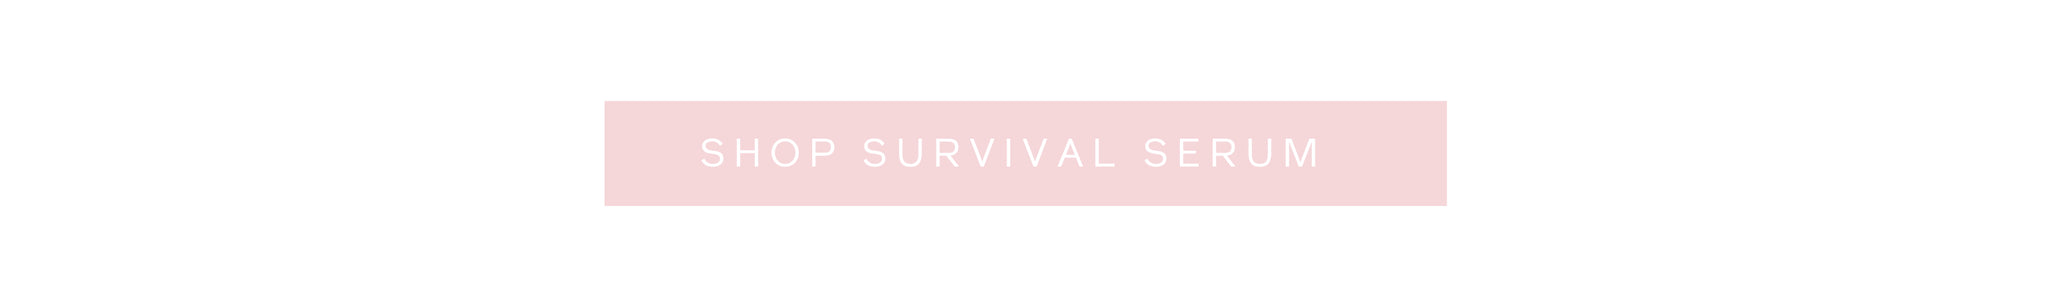 Shop Survival Skin Serum